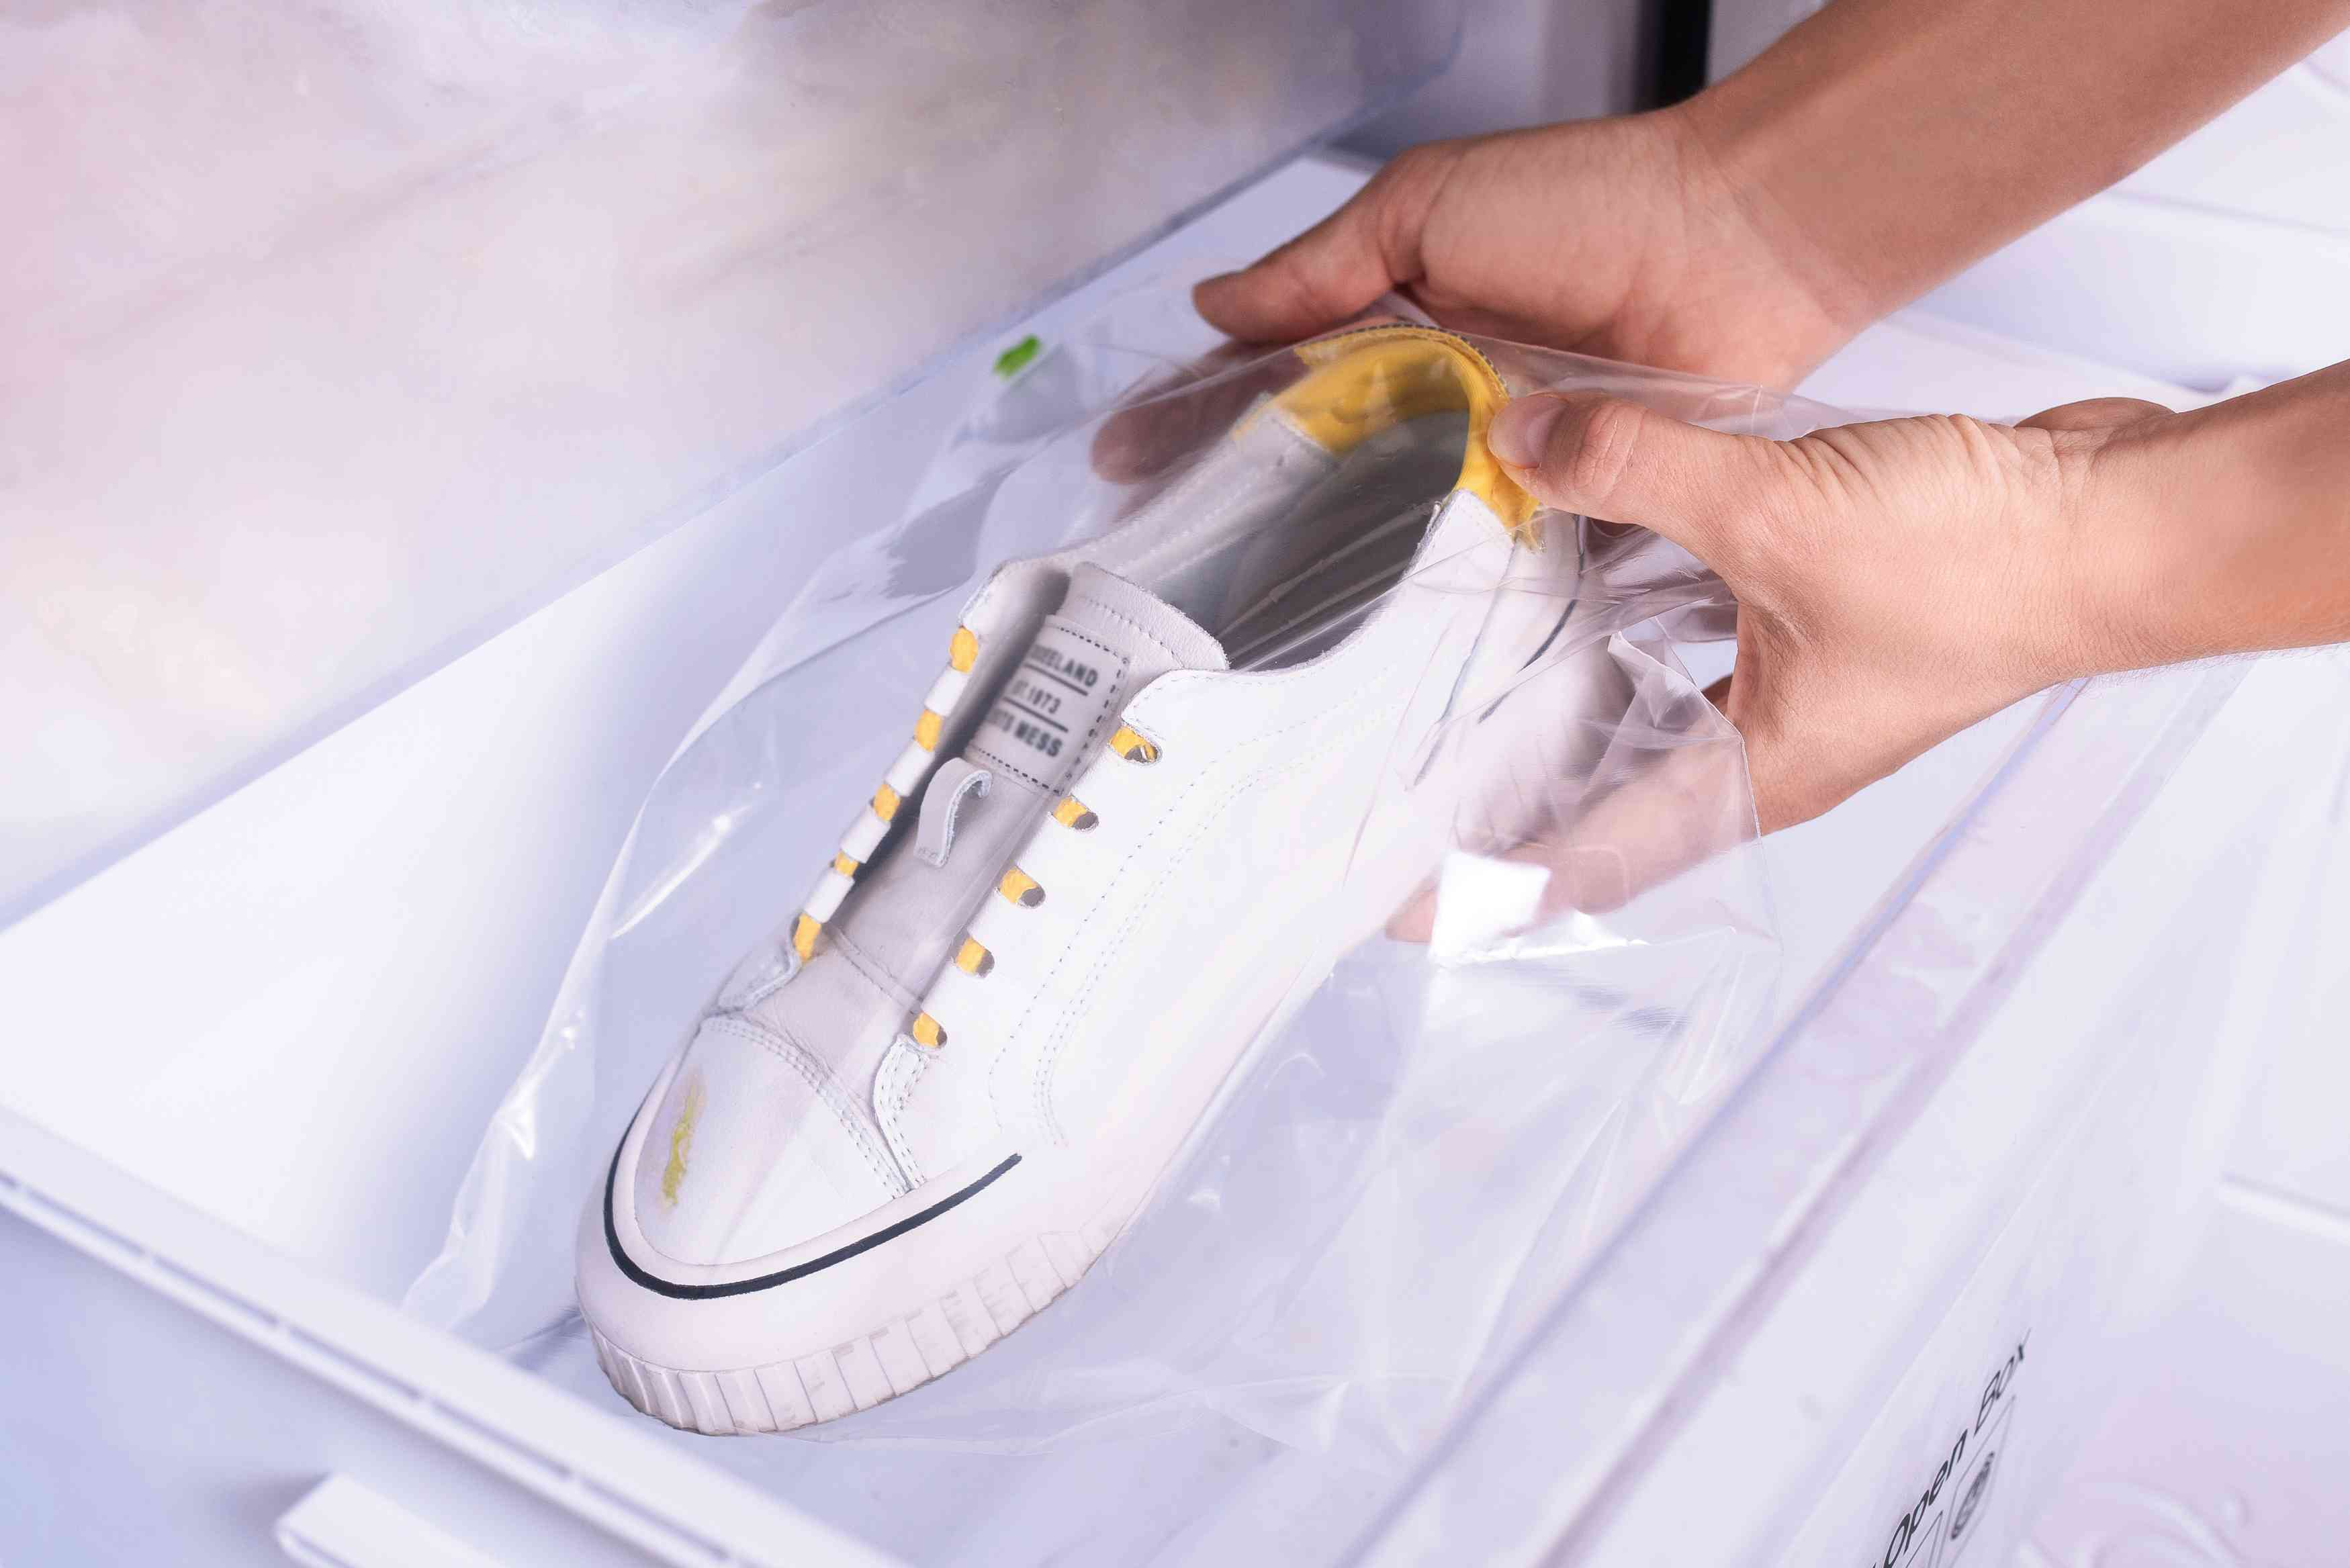 freezing a sap stain on a shoe